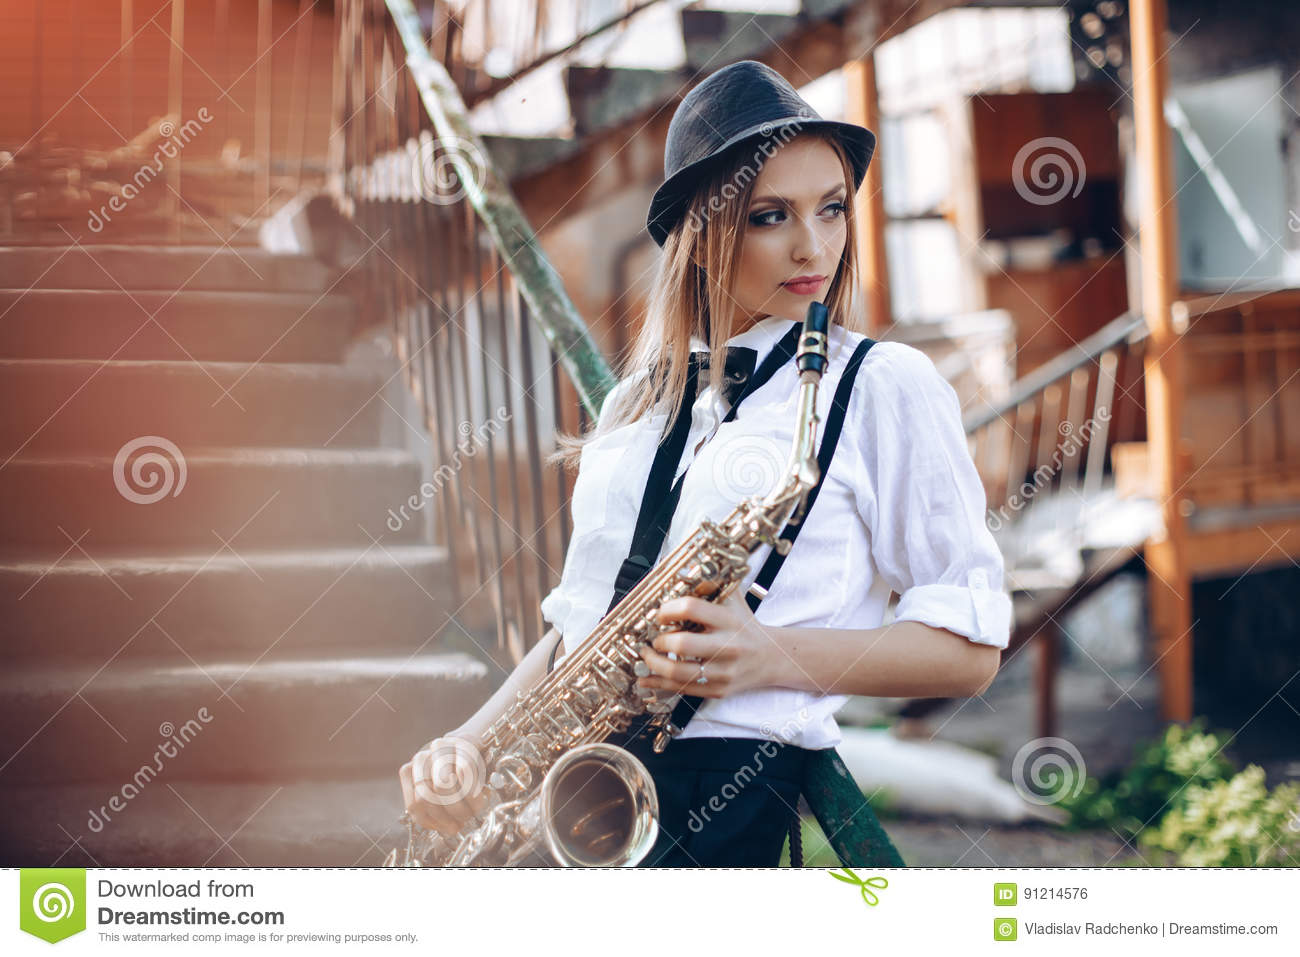 Young Attractive Girl In White Shirt With A Saxophone -8881